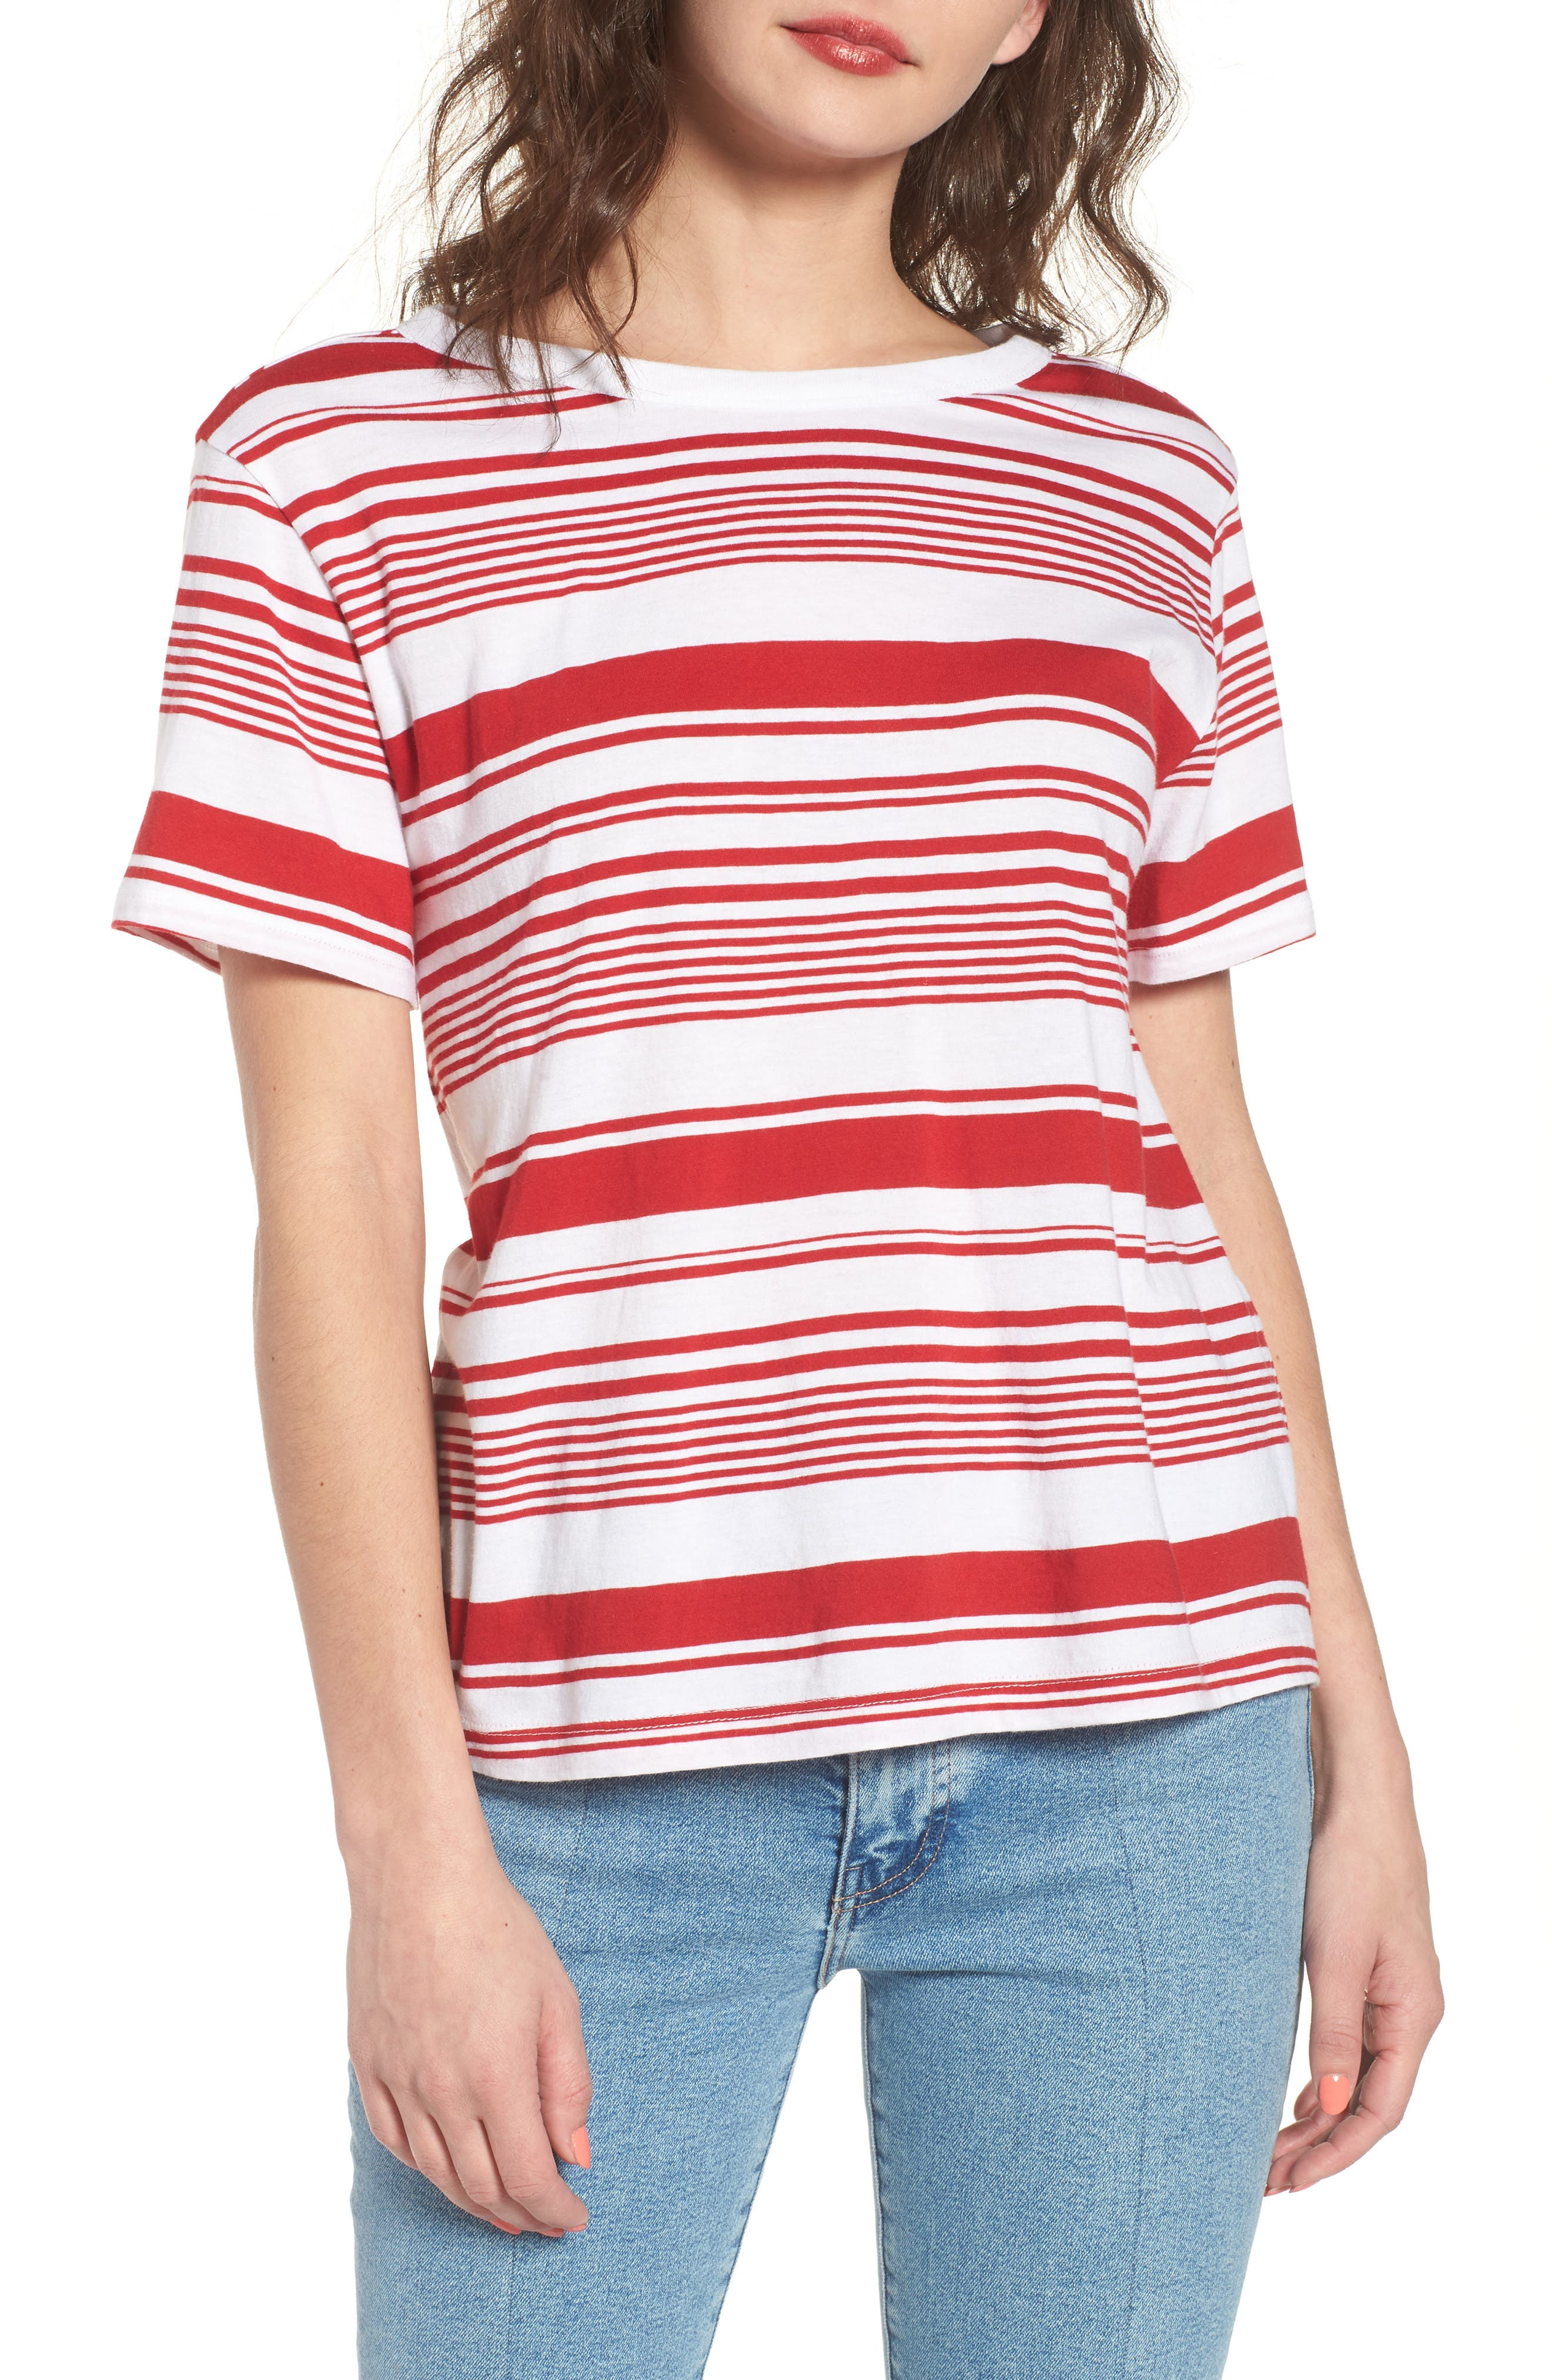 Twist Back Tee,                             Main thumbnail 1, color,                             Red Couture Monaco Stripe